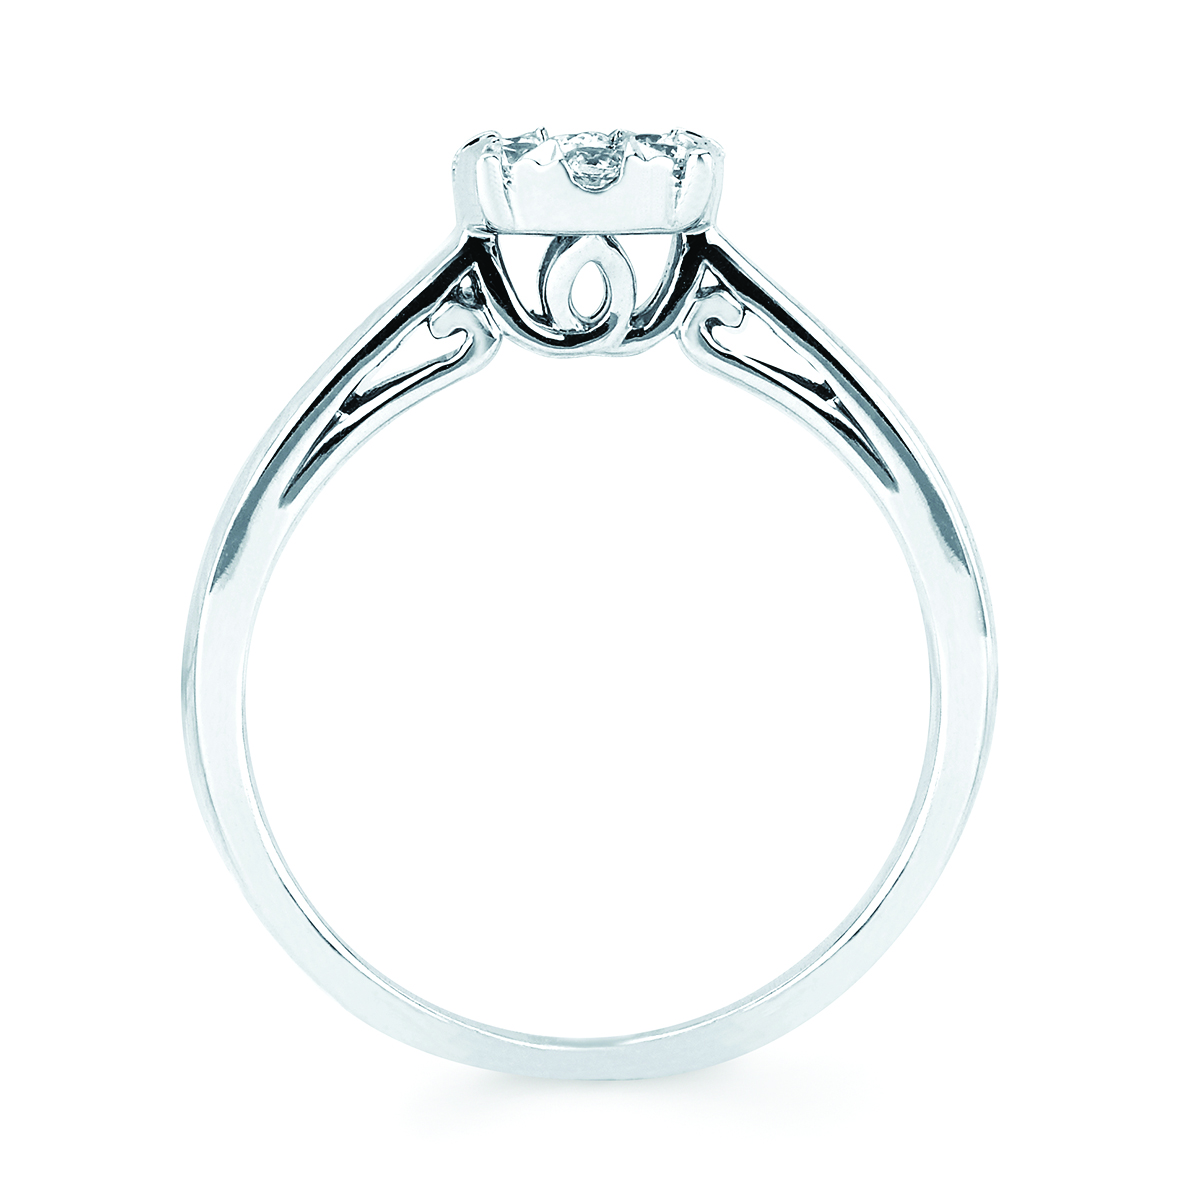 Wrap Rings - 14k White Gold Ring - image 4